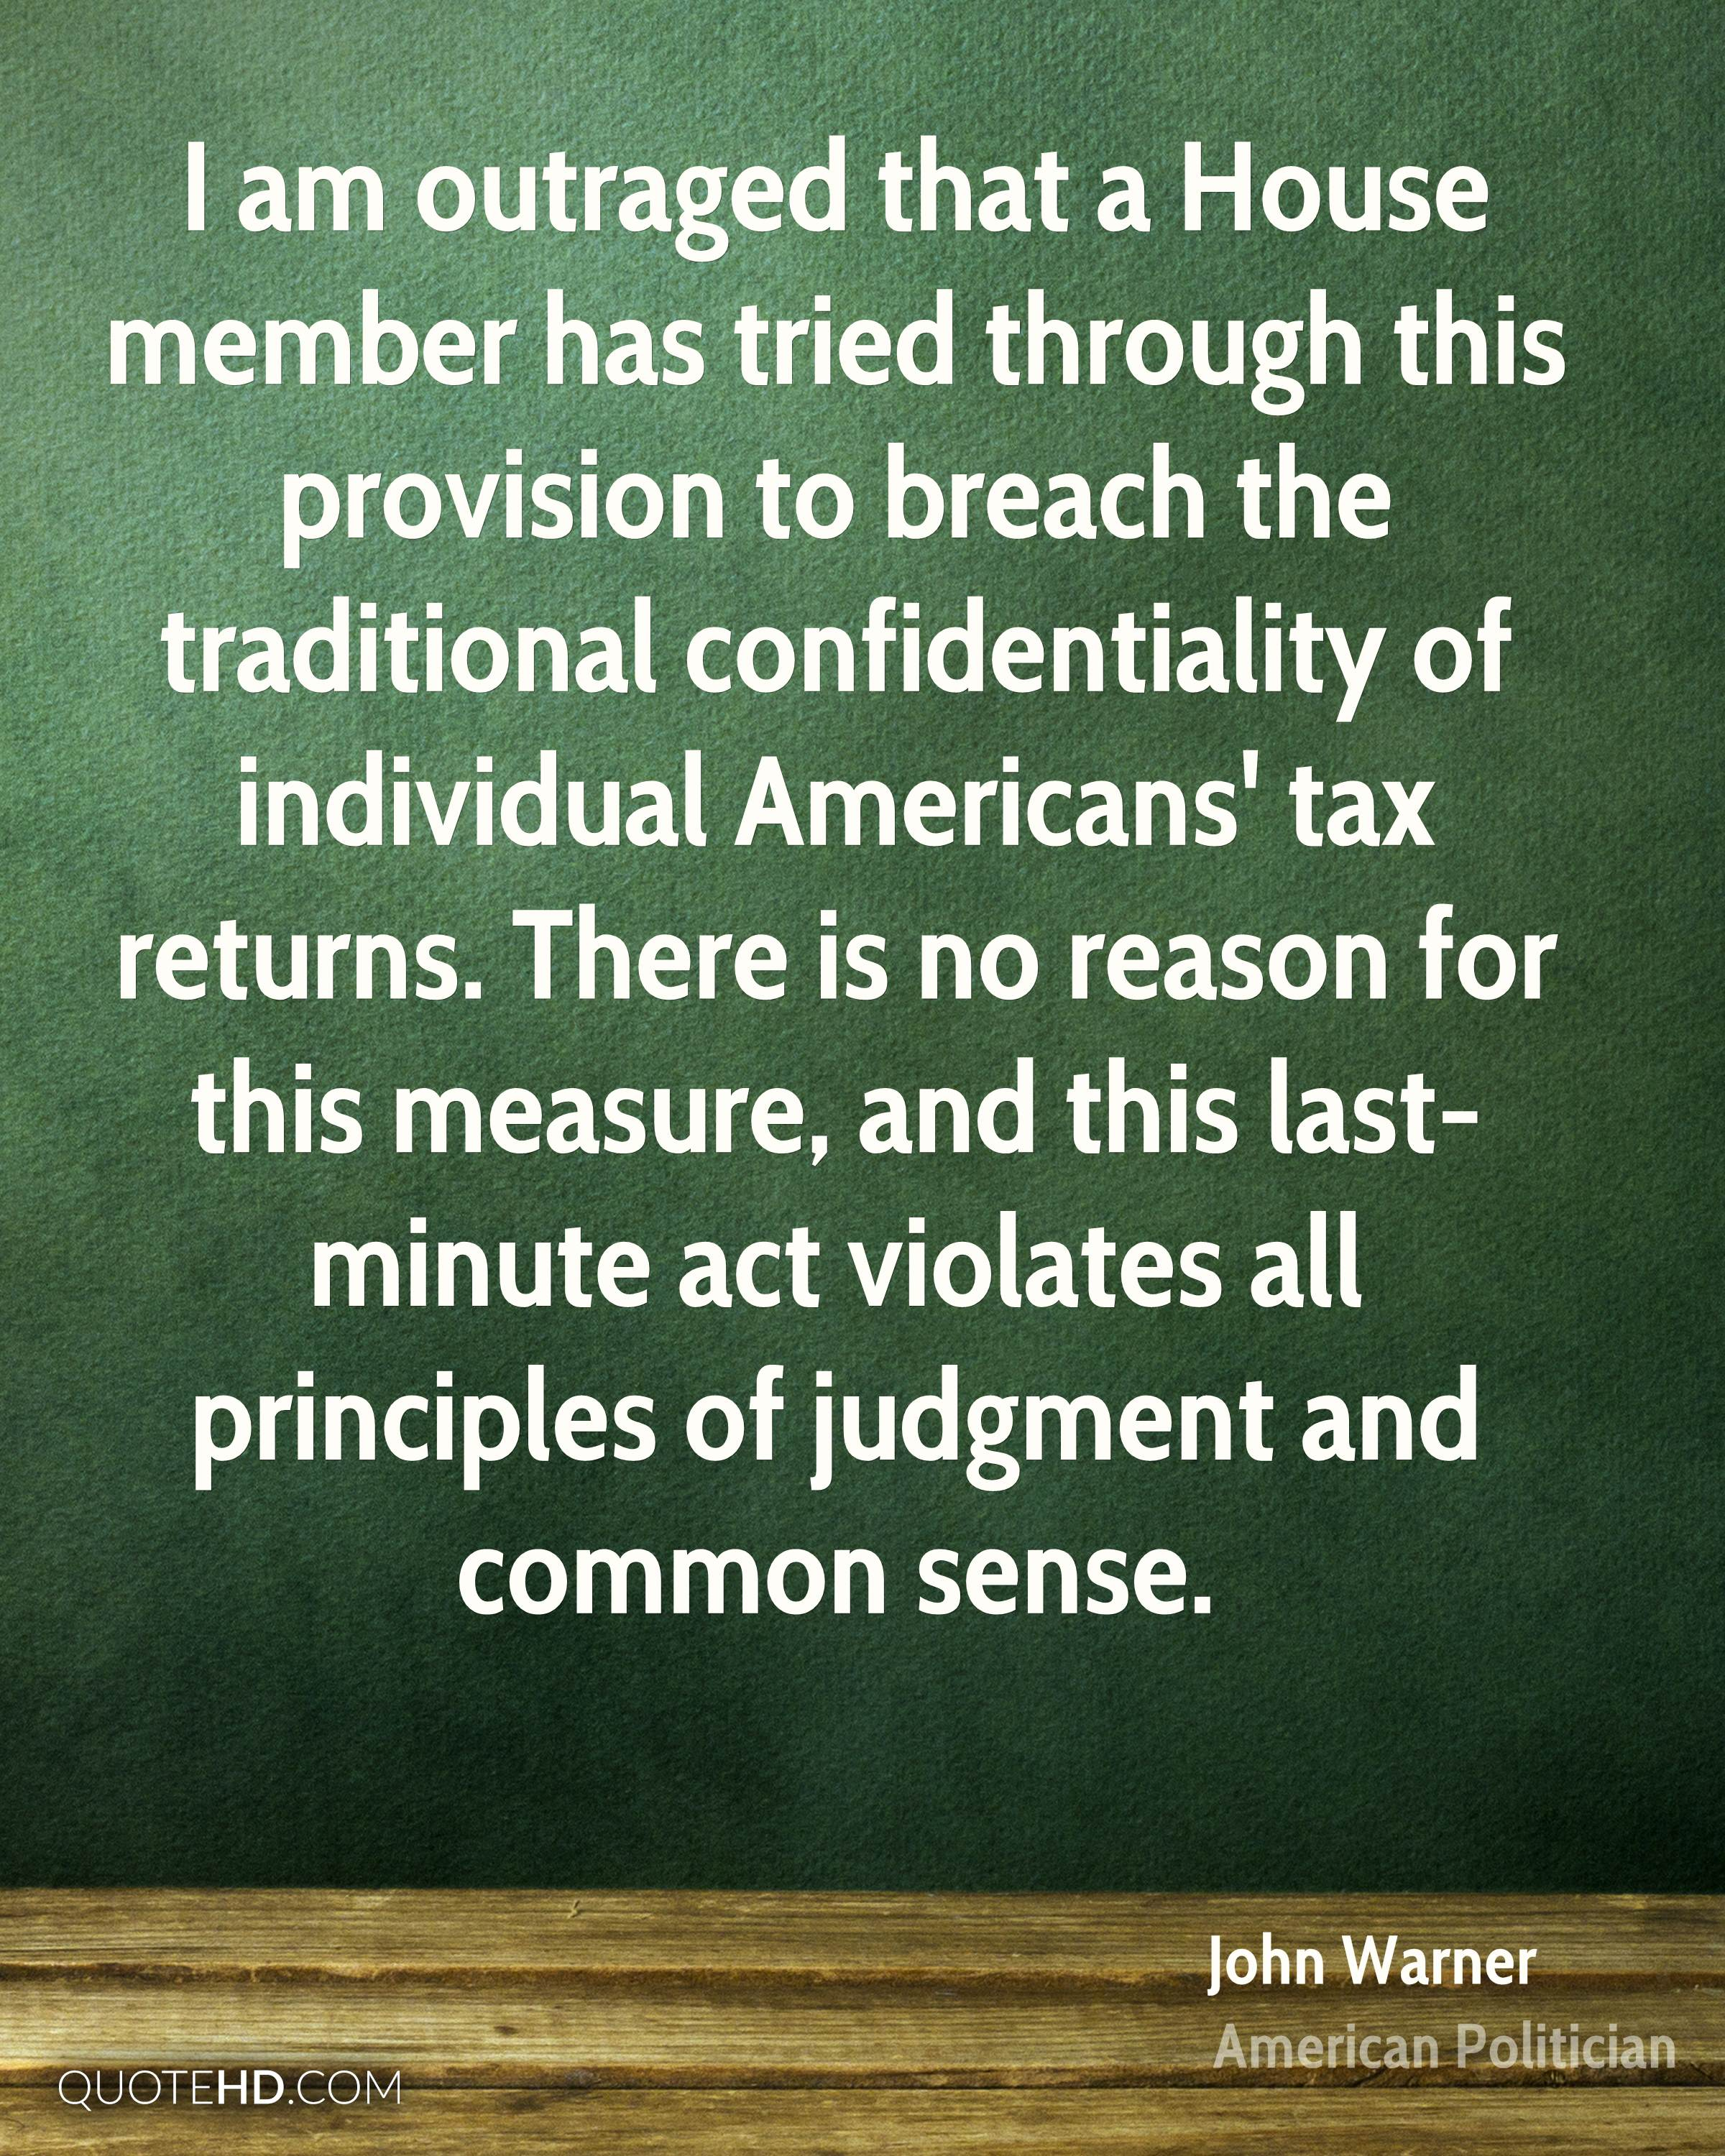 I am outraged that a House member has tried through this provision to breach the traditional confidentiality of individual Americans' tax returns. There is no reason for this measure, and this last-minute act violates all principles of judgment and common sense.